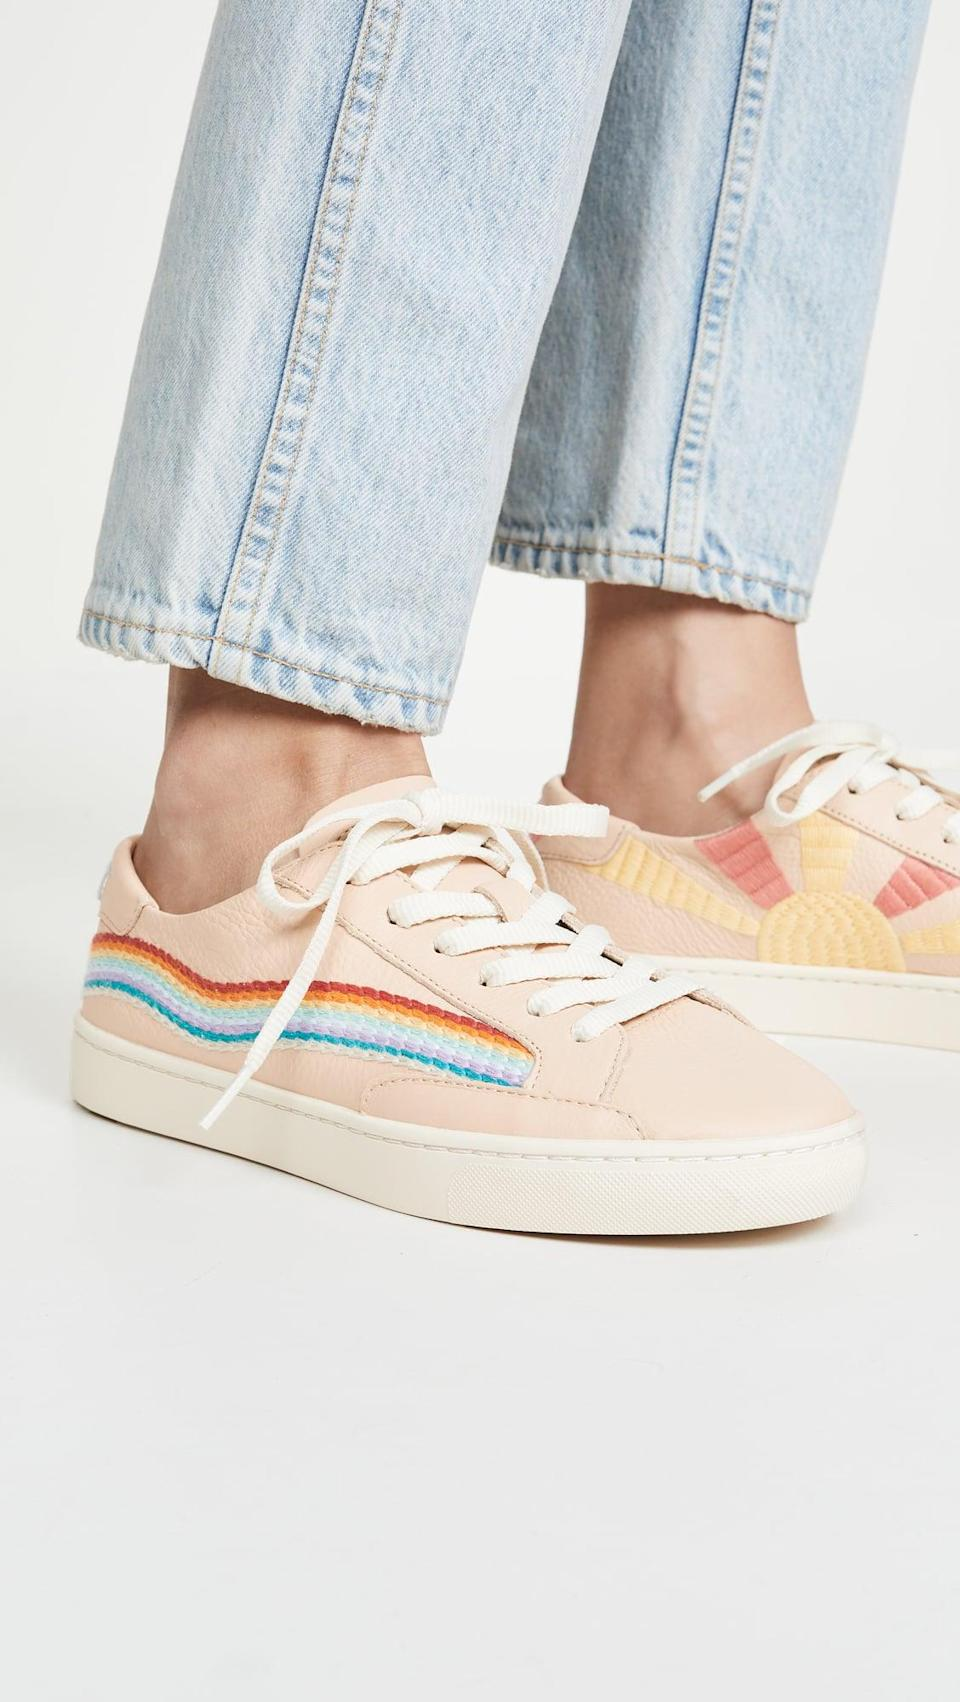 "<p><a href=""https://www.popsugar.com/buy/Soludos-Rainbow-Wave-Sneakers-561554?p_name=Soludos%20Rainbow%20Wave%20Sneakers&retailer=shopbop.com&pid=561554&price=139&evar1=fab%3Aus&evar9=44311634&evar98=https%3A%2F%2Fwww.popsugar.com%2Ffashion%2Fphoto-gallery%2F44311634%2Fimage%2F47375139%2FSoludos-Rainbow-Wave-Sneakers&list1=shopping%2Cshoes%2Csneakers%2Choliday%2Cgift%20guide%2Ceditors%20pick%2Cfashion%20gifts%2Cgifts%20for%20women&prop13=api&pdata=1"" class=""link rapid-noclick-resp"" rel=""nofollow noopener"" target=""_blank"" data-ylk=""slk:Soludos Rainbow Wave Sneakers"">Soludos Rainbow Wave Sneakers</a> ($139)</p> <p>""How can you resist these embroidered sneakers? They are just so happy."" - Macy Cate Williams, editor, Shop and Must Have</p>"